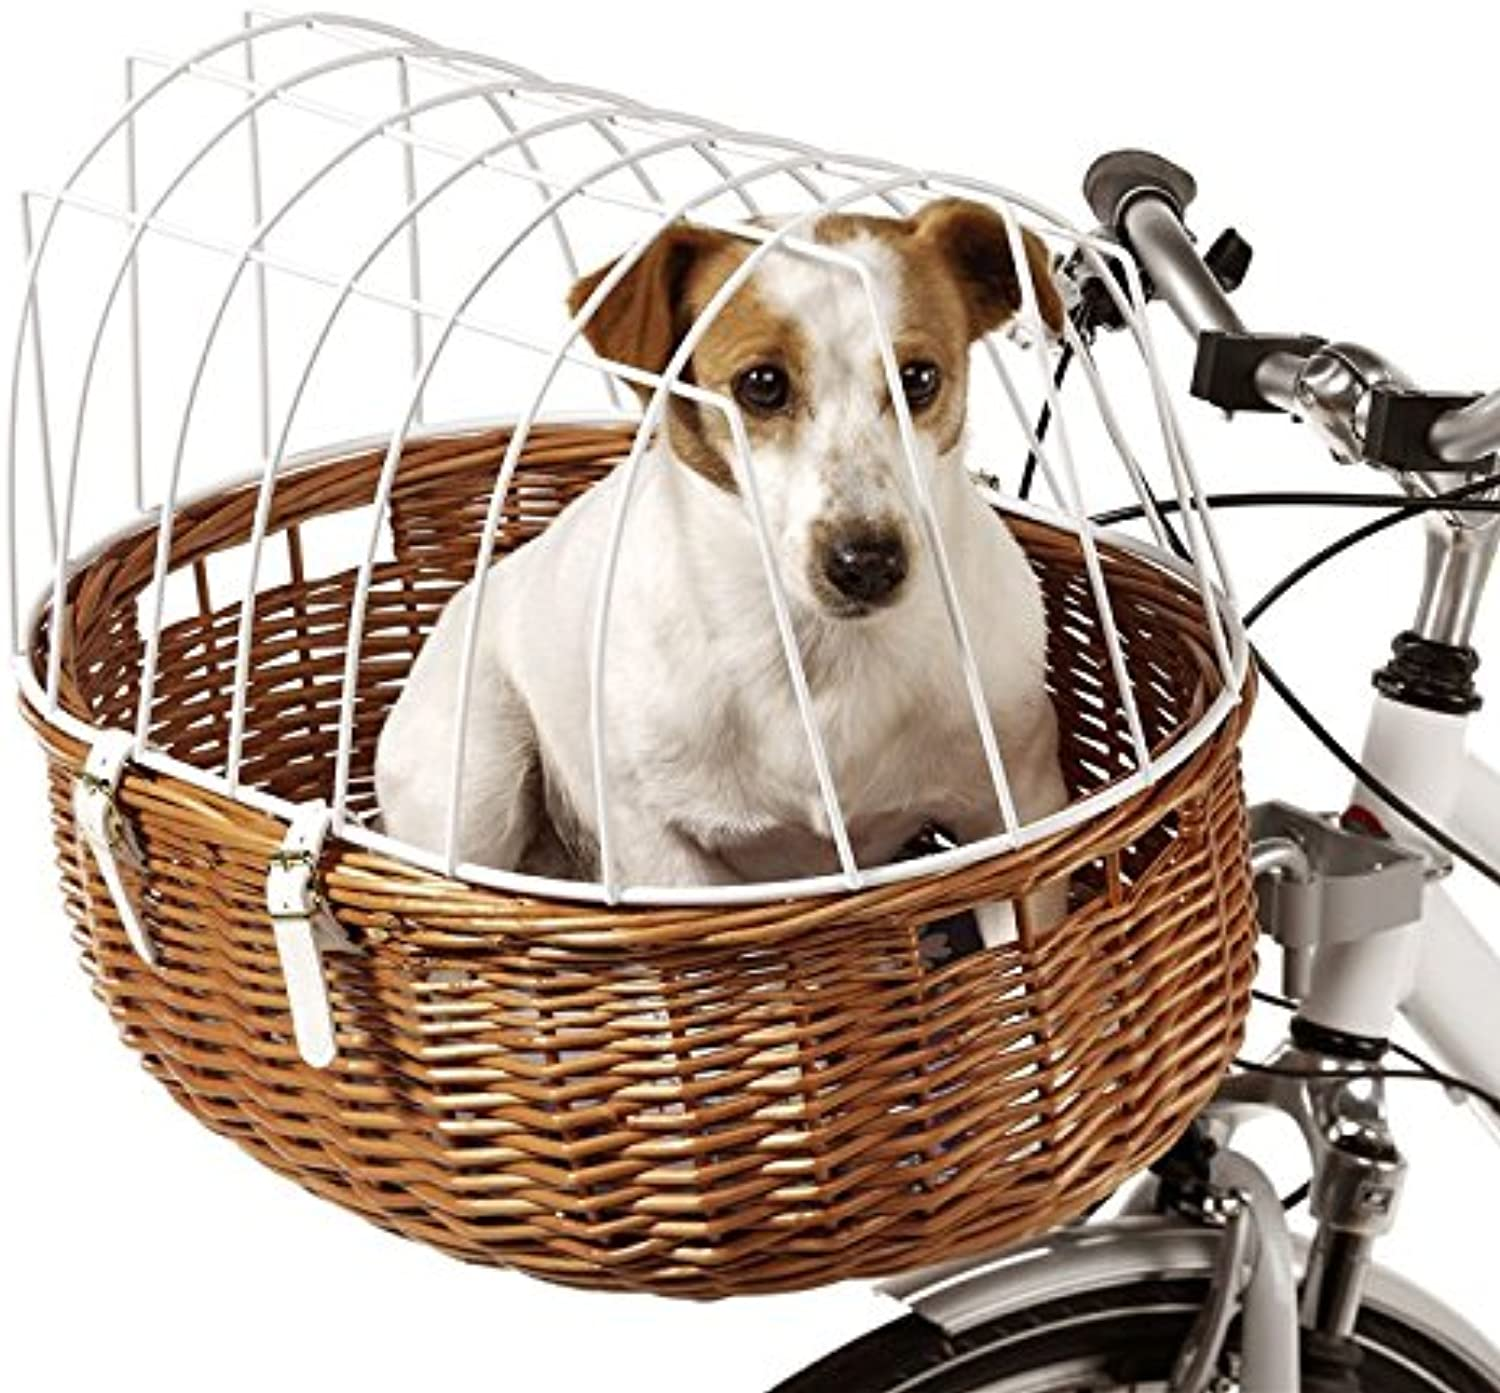 Bicycle Basket For Dogs And Pets Heavy Gauge Wire Guarantee Your Pet's Safety Able to carry up to 12kg 52 x 38 x 39 cm (L x W x H)